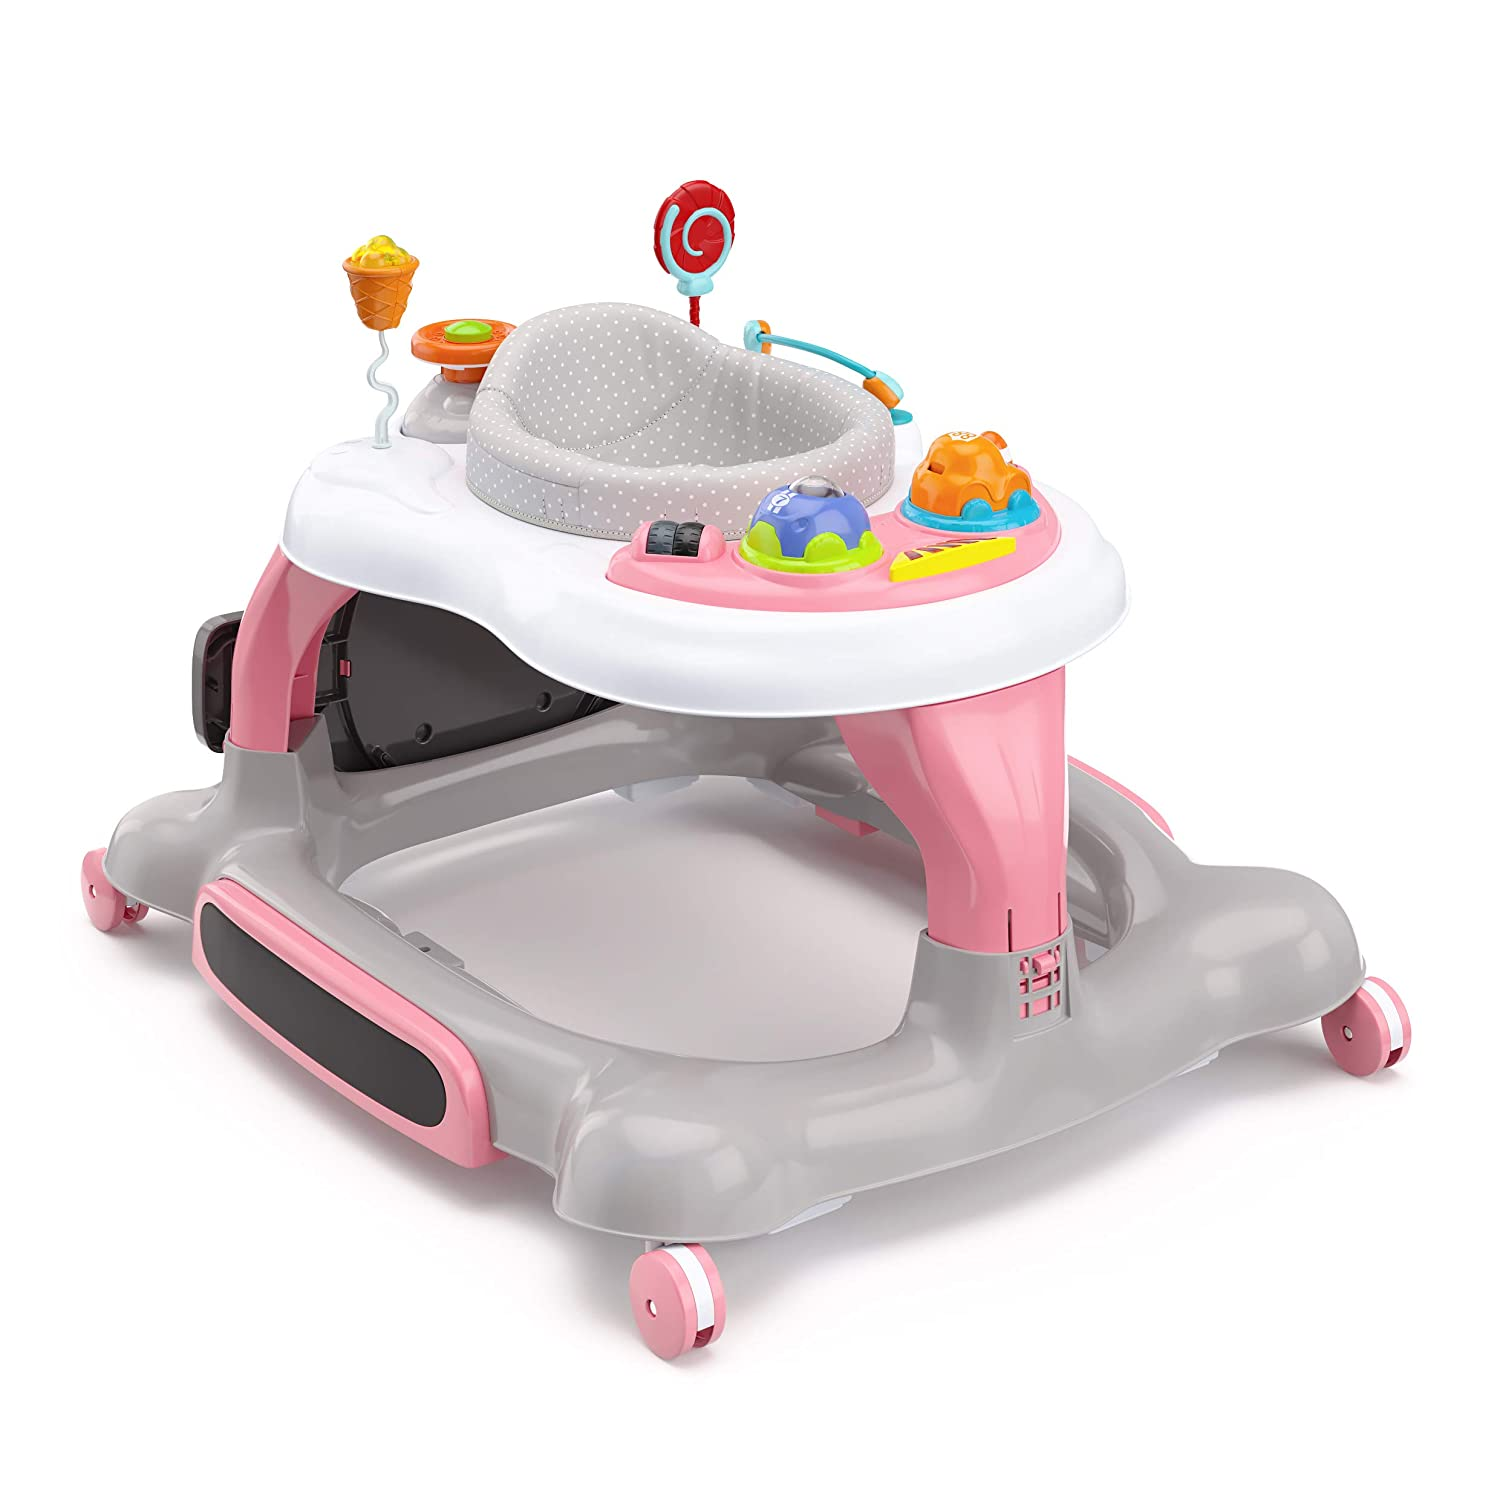 Storkcraft 3-in-1 Activity Walker and Rocker with Jumping Board and Feeding Tray, Interactive Walker with Toy Tray and Jumping Board for Toddlers and Infants- Pink